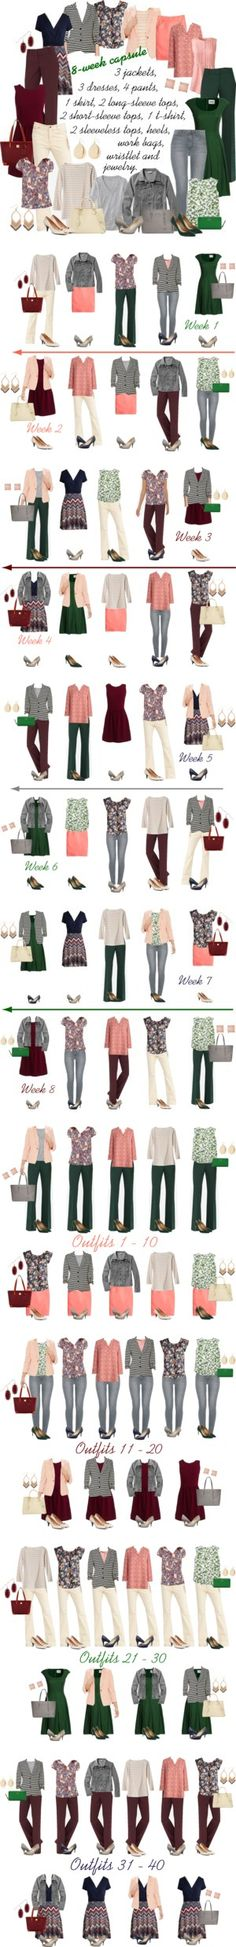 Summer/Fall 8-week Capsule by kristin727 on Polyvore featuring Lands' End, Canvas by Lands' End, J.Crew, Dooney & Bourke, Lauren Ralph Lauren, Brooks Brothers, Kate Spade, L.L.Bean, Nine West and Kendra Scott